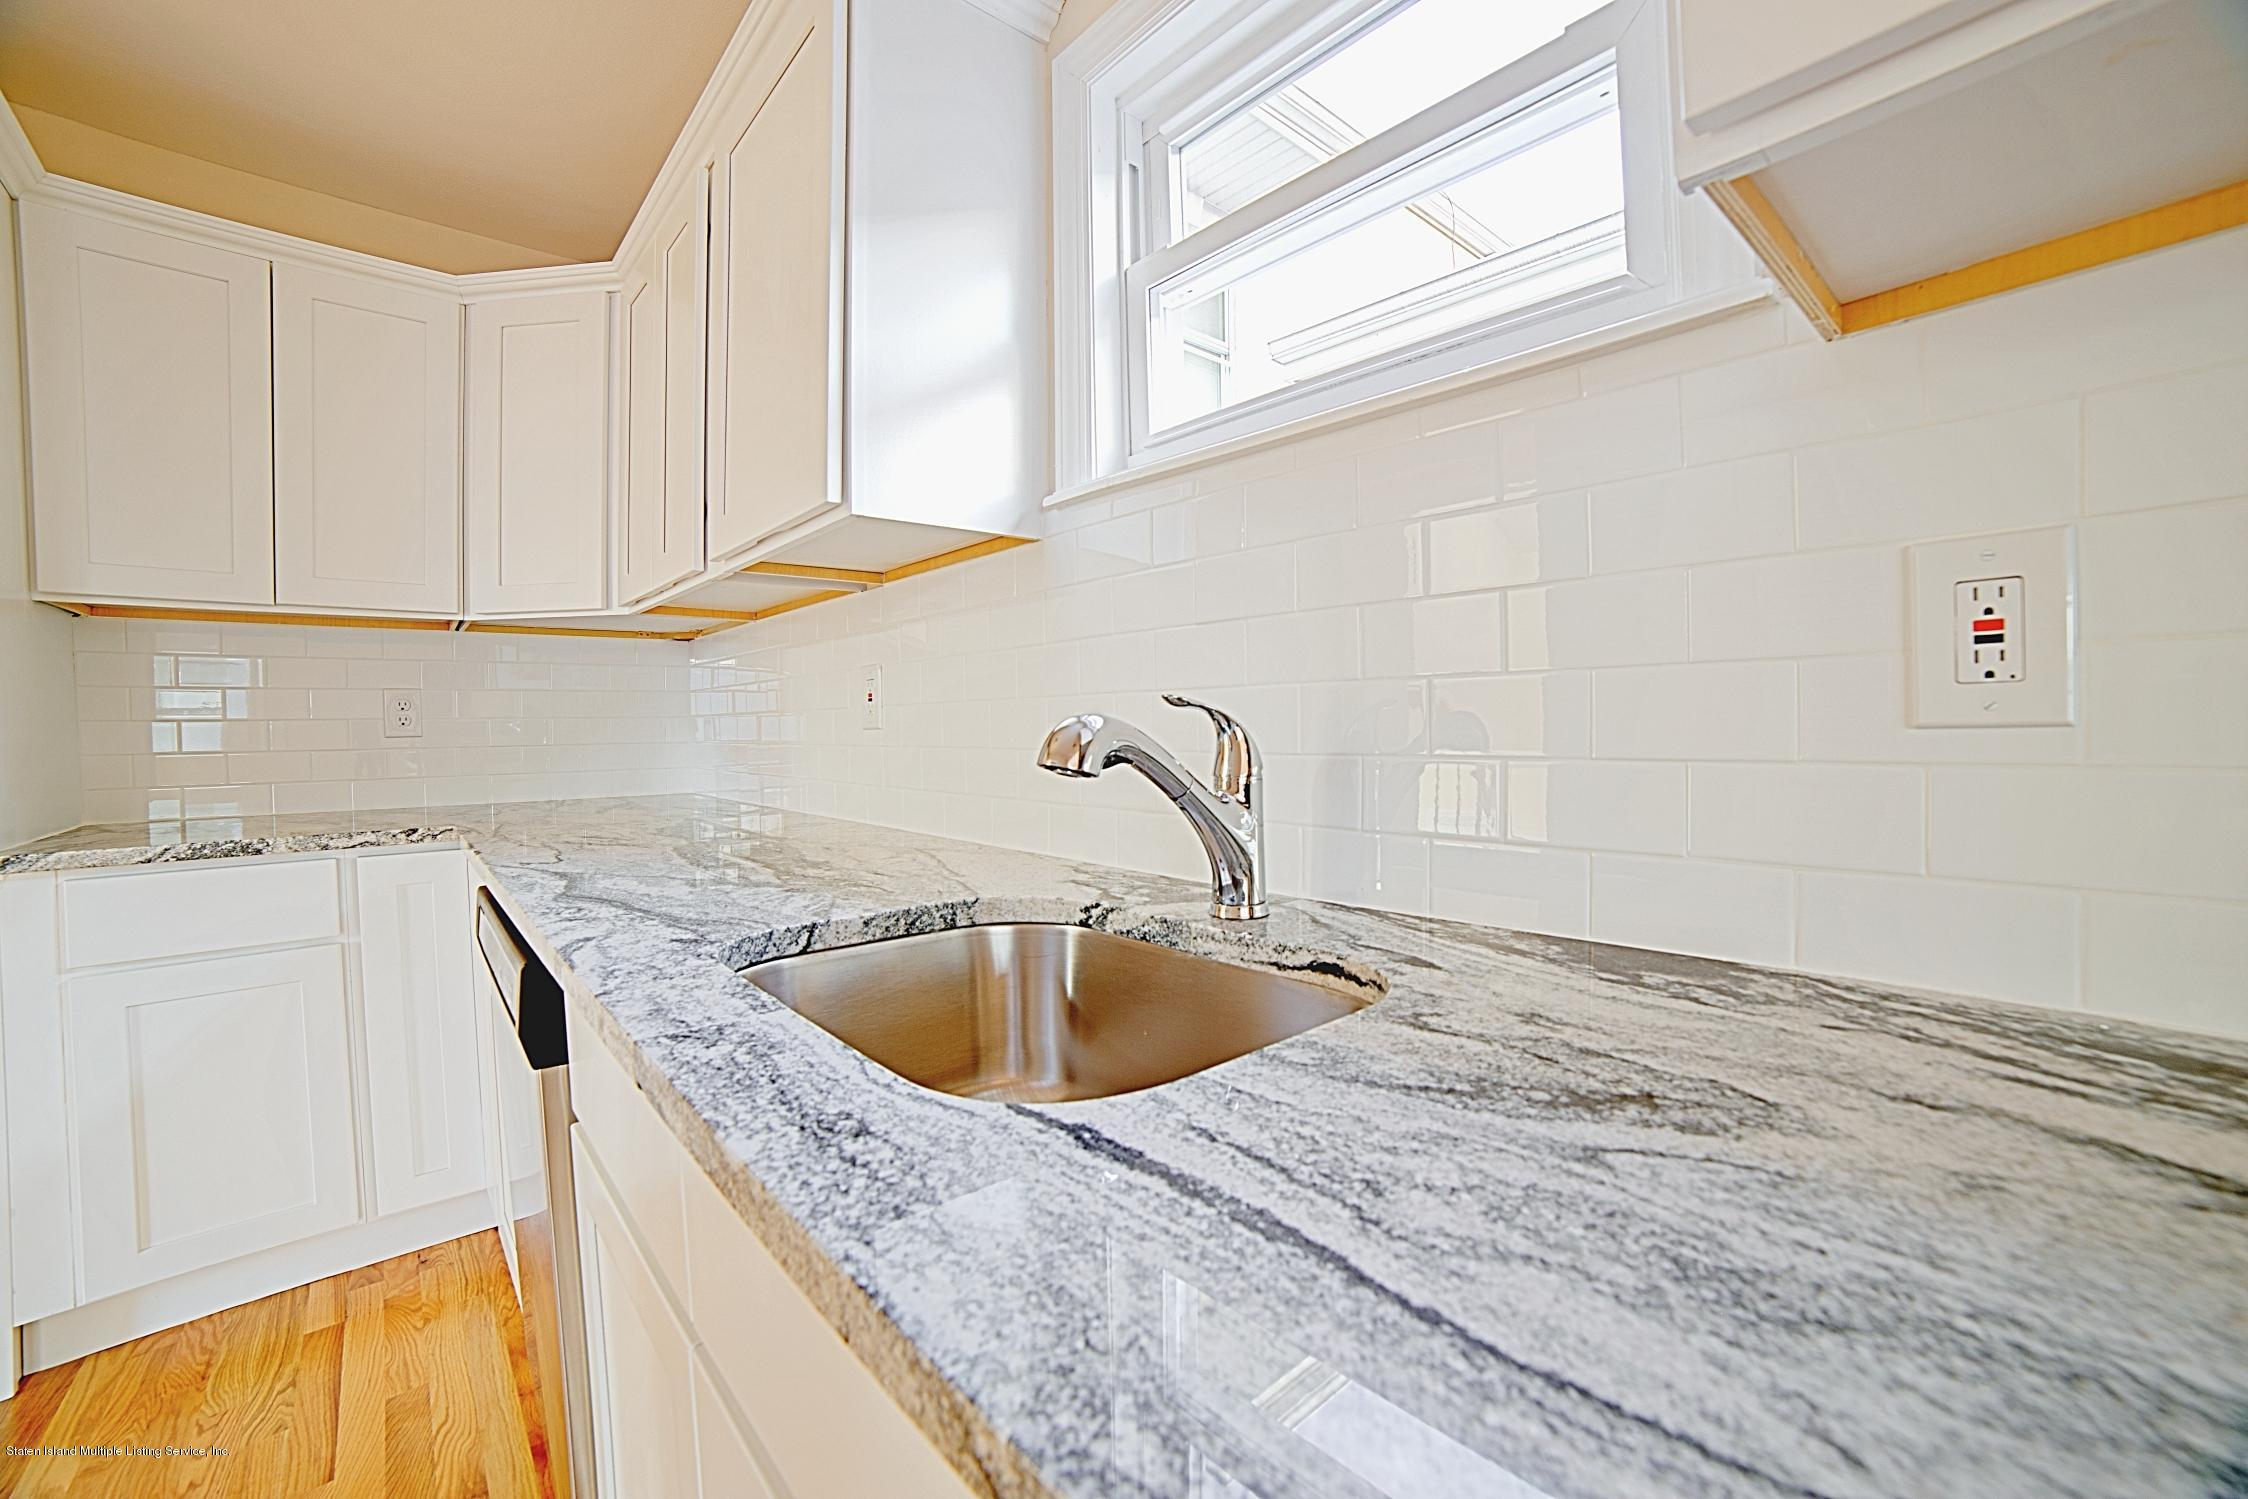 Single Family - Detached 87 Manchester Drive  Staten Island, NY 10312, MLS-1135150-10